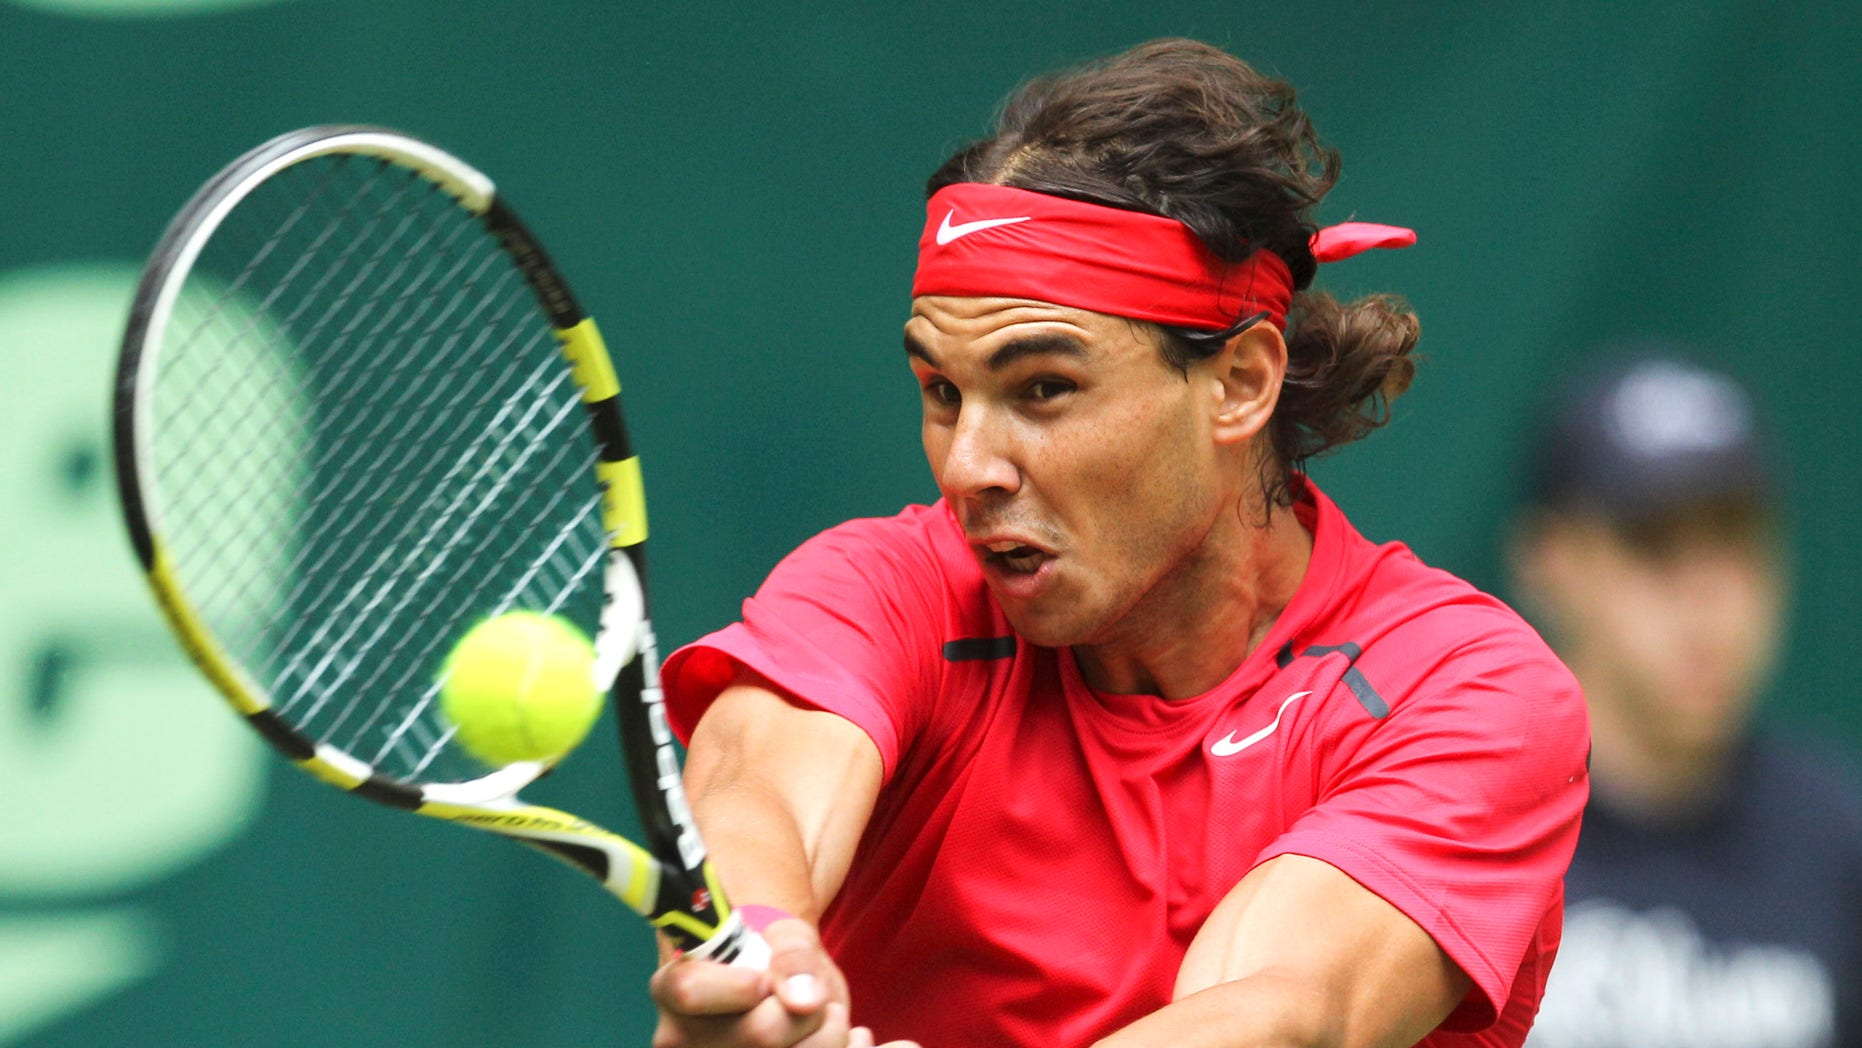 June 14, 2012: Spain's Rafael Nadal  returns a ball during his match against Lukas Lacko from Slovakia at the  Gerry Weber Open, ATP tennis tournament in Halle, Germany.